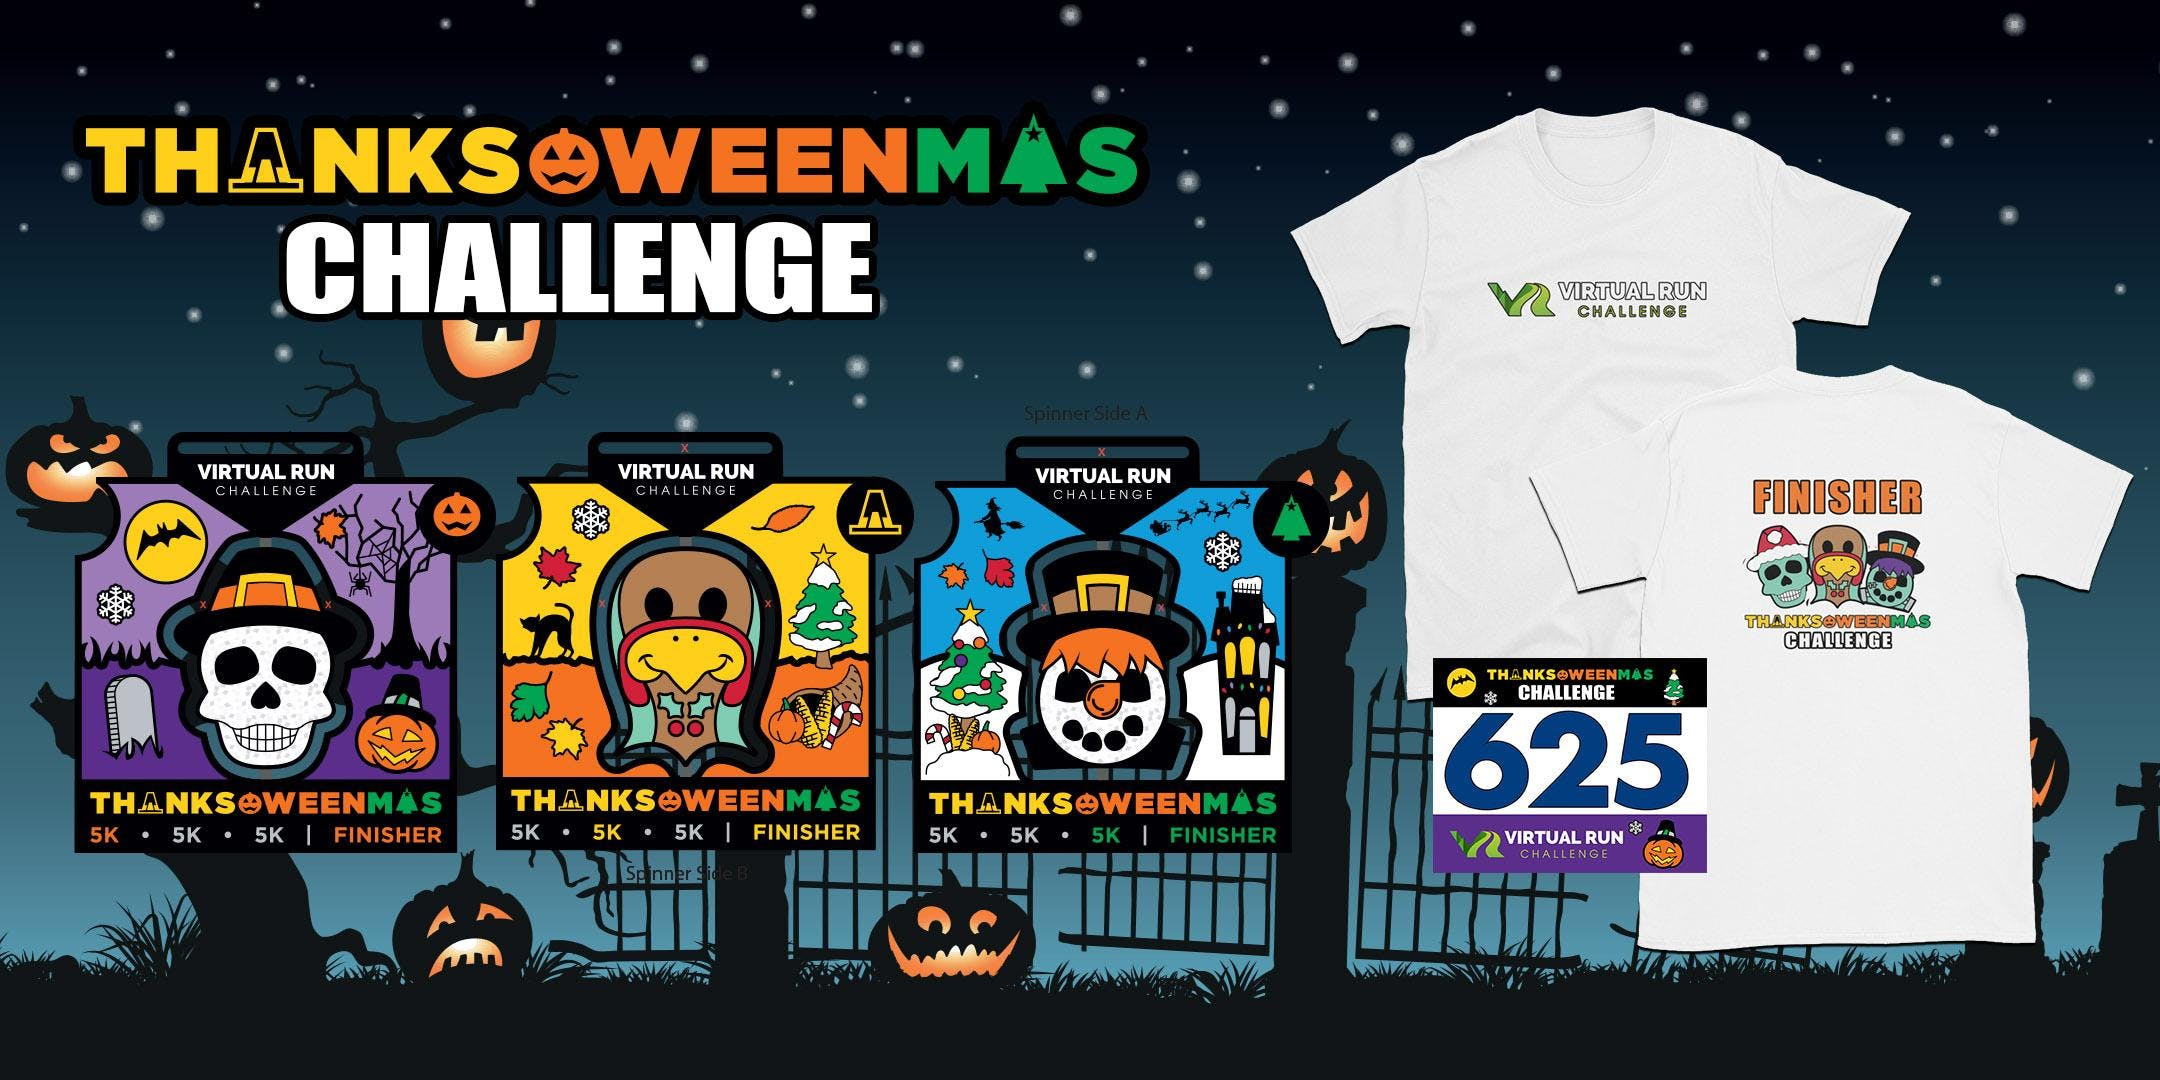 2019 - Thanks-Oween-Mas Virtual 5k Challenge - Chandler